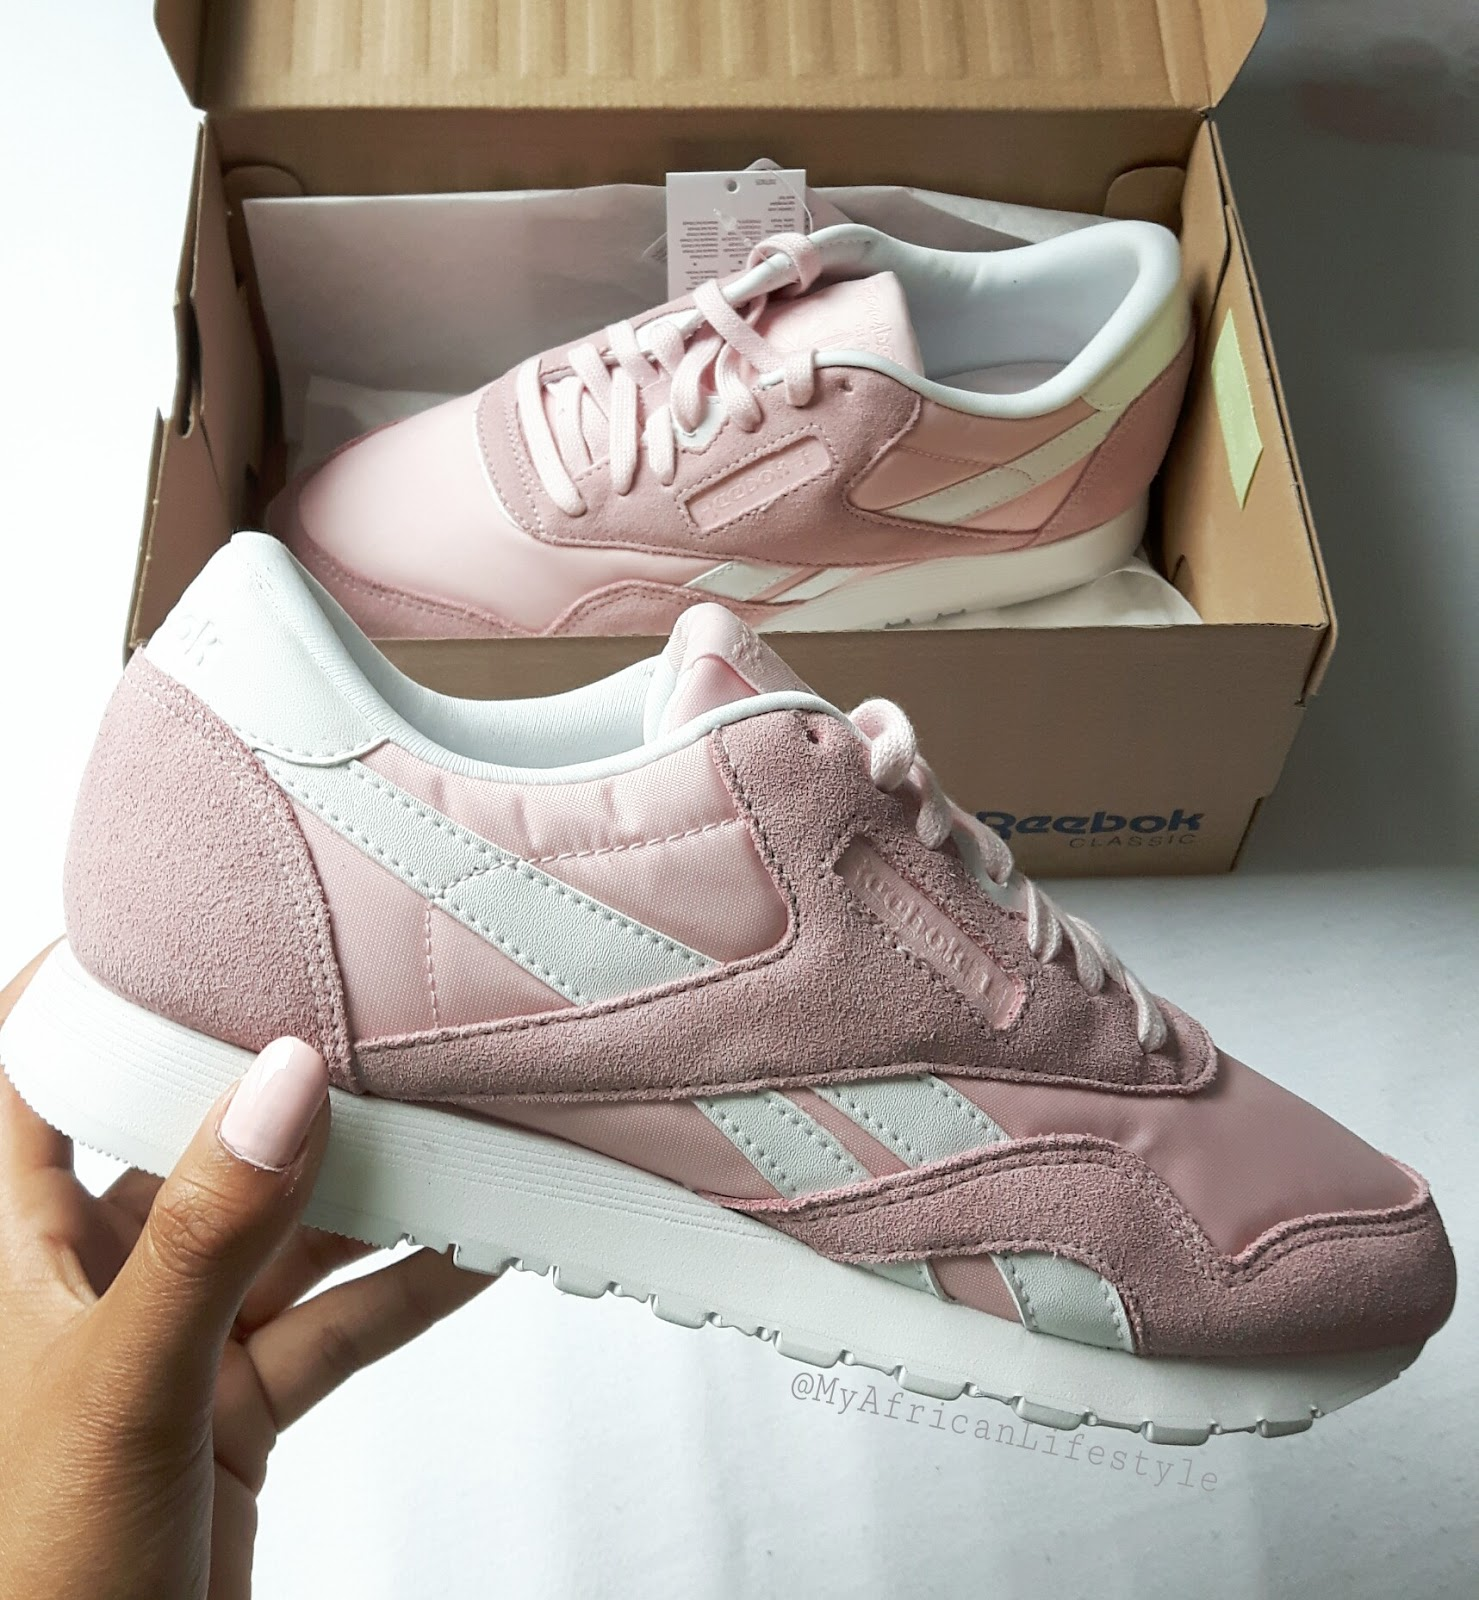 dcce67cf30169 Reebok Classic Nylon SP Pink Erfahrung Review - MyAfricanLifestyle